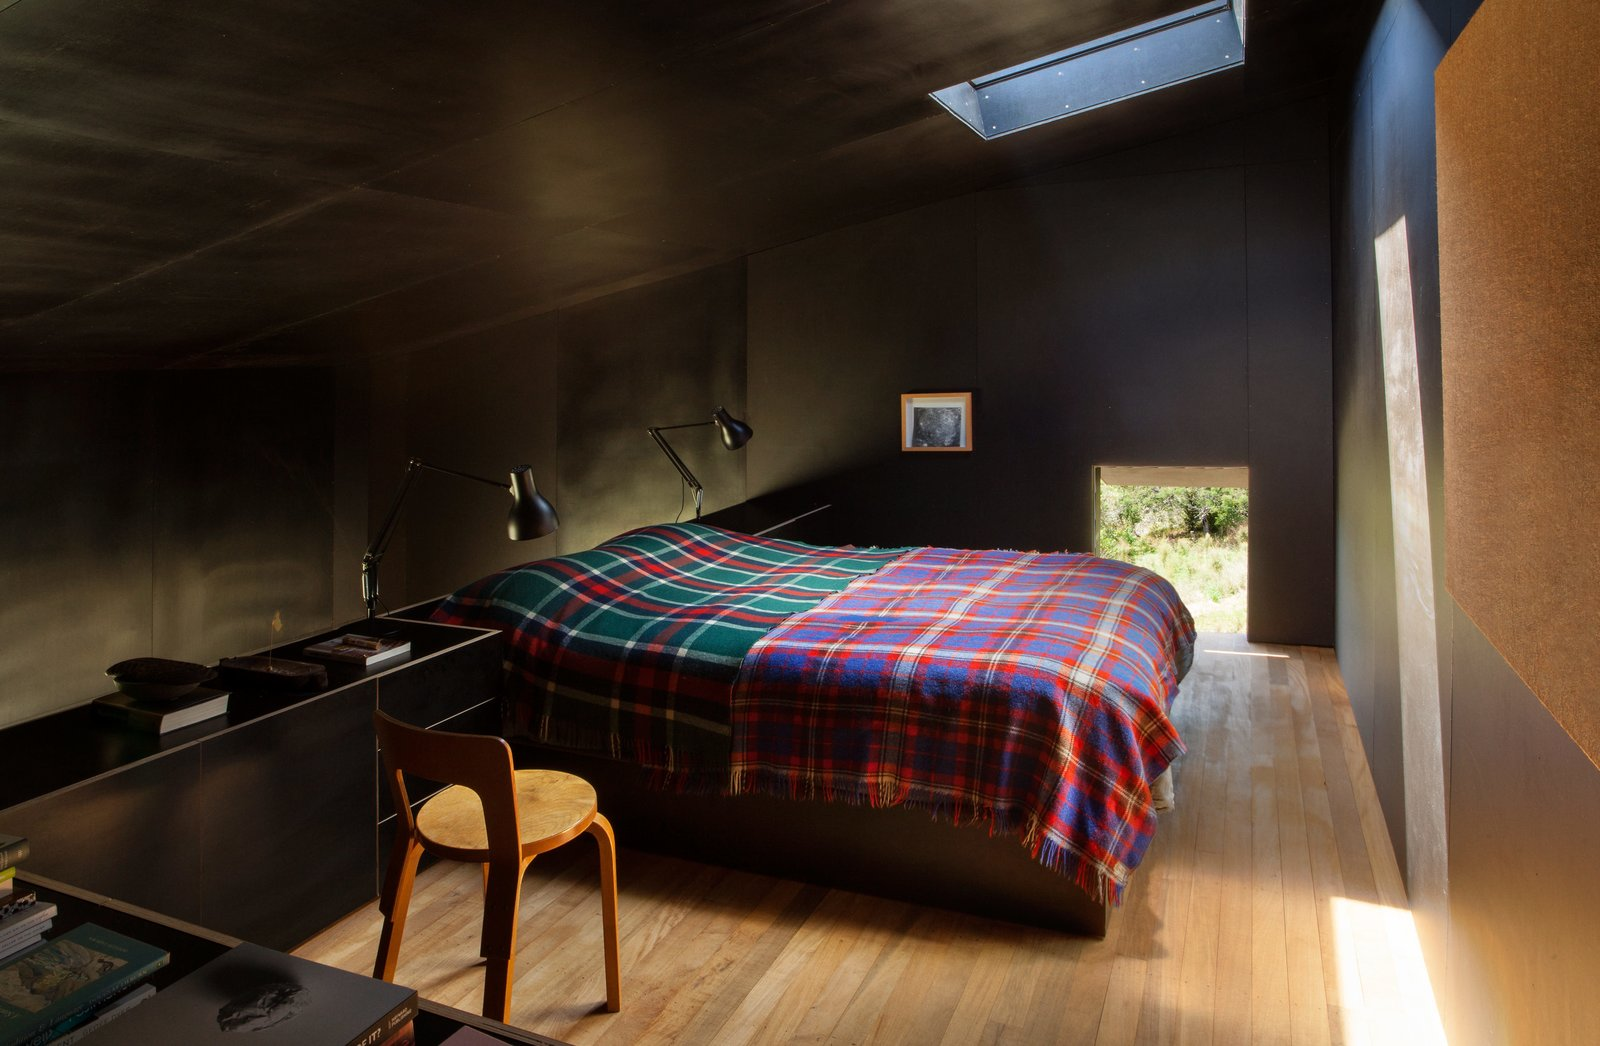 """The formply used to line the black interior creates a """"small, inky bubble of space,"""" Cheshire says. """"It's incredibly calm and quiet as a consequence."""" His firm designed the built-in bed and cabinetry. The two Type 75 lamps are by Kenneth Grange for Anglepoise, and the Chair 65 is by Alvar Aalto. Tagged: Bedroom, Bed, Chair, Lamps, and Night Stands.  Photo 5 of 7 in Two Tiny Cabins Chose Simplicity Over Size"""